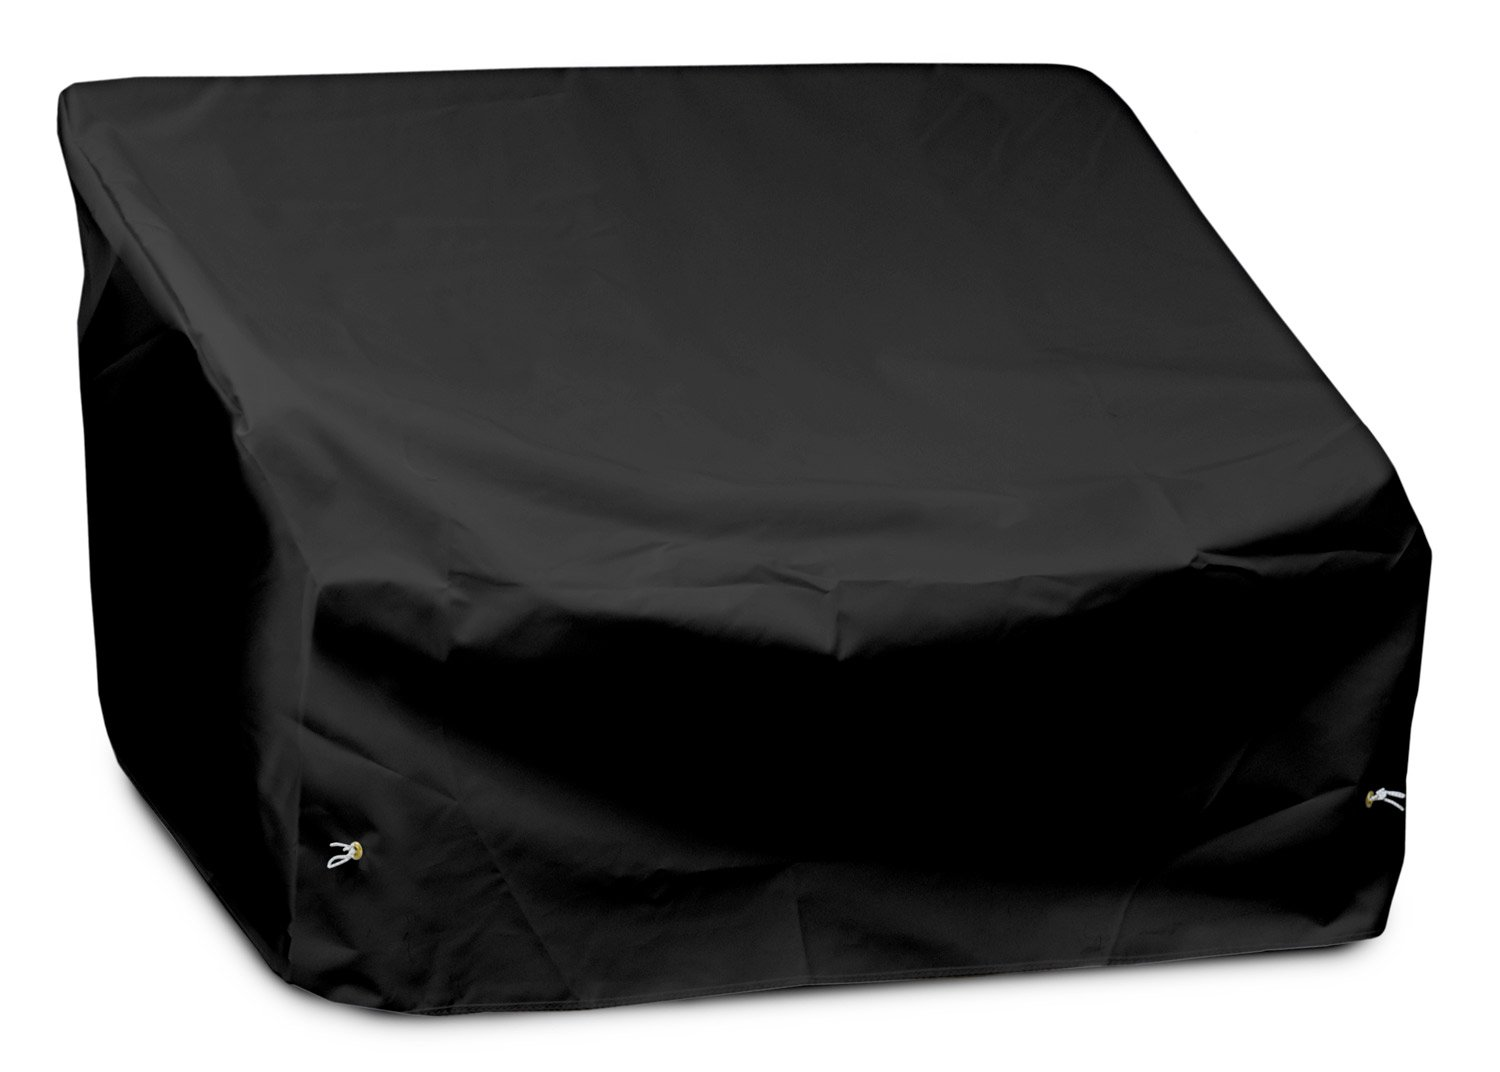 KoverRoos Weathermax 79147 Loveseat/Sofa Cover, 51-Inch Width by 33-Inch Diameter by 33-Inch Height, Black